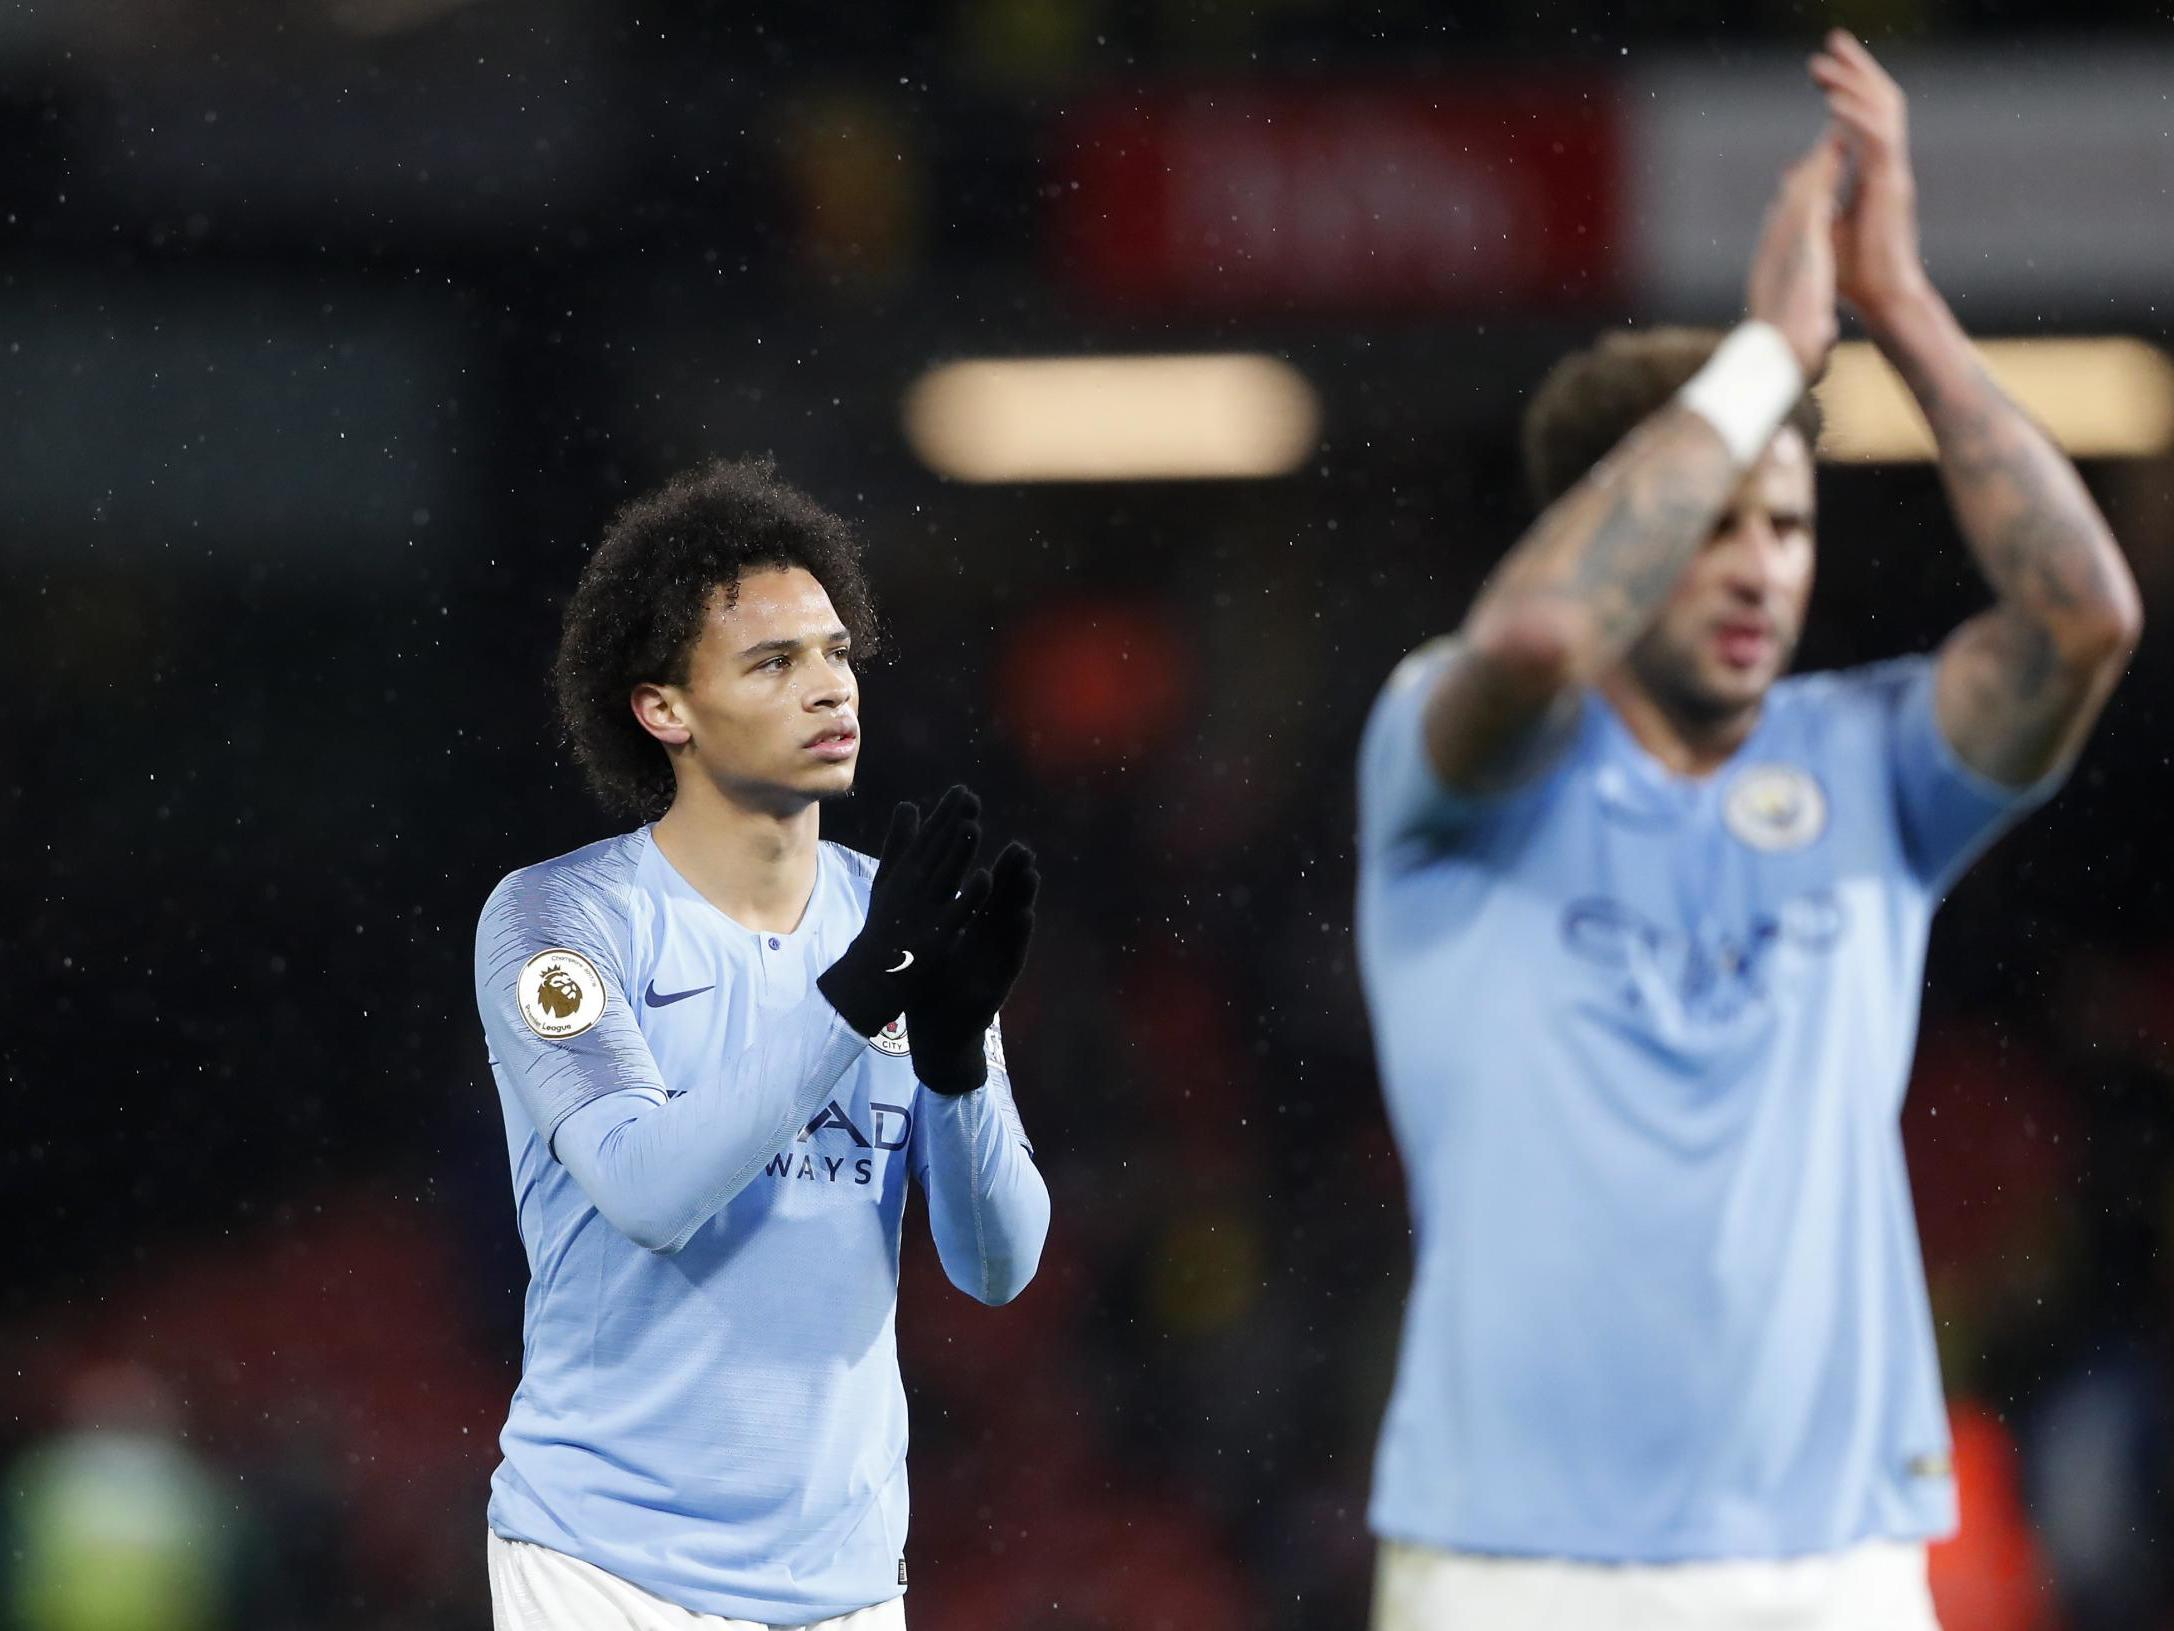 Leroy Sane and Riyad Mahrez see Manchester City to victory against resilient Watford<img src='https://static.independent.co.uk/s3fs-public/thumbnails/image/2018/12/04/22/manchester-city.jpg' class='wpcp-image attachment-thumbnail' />